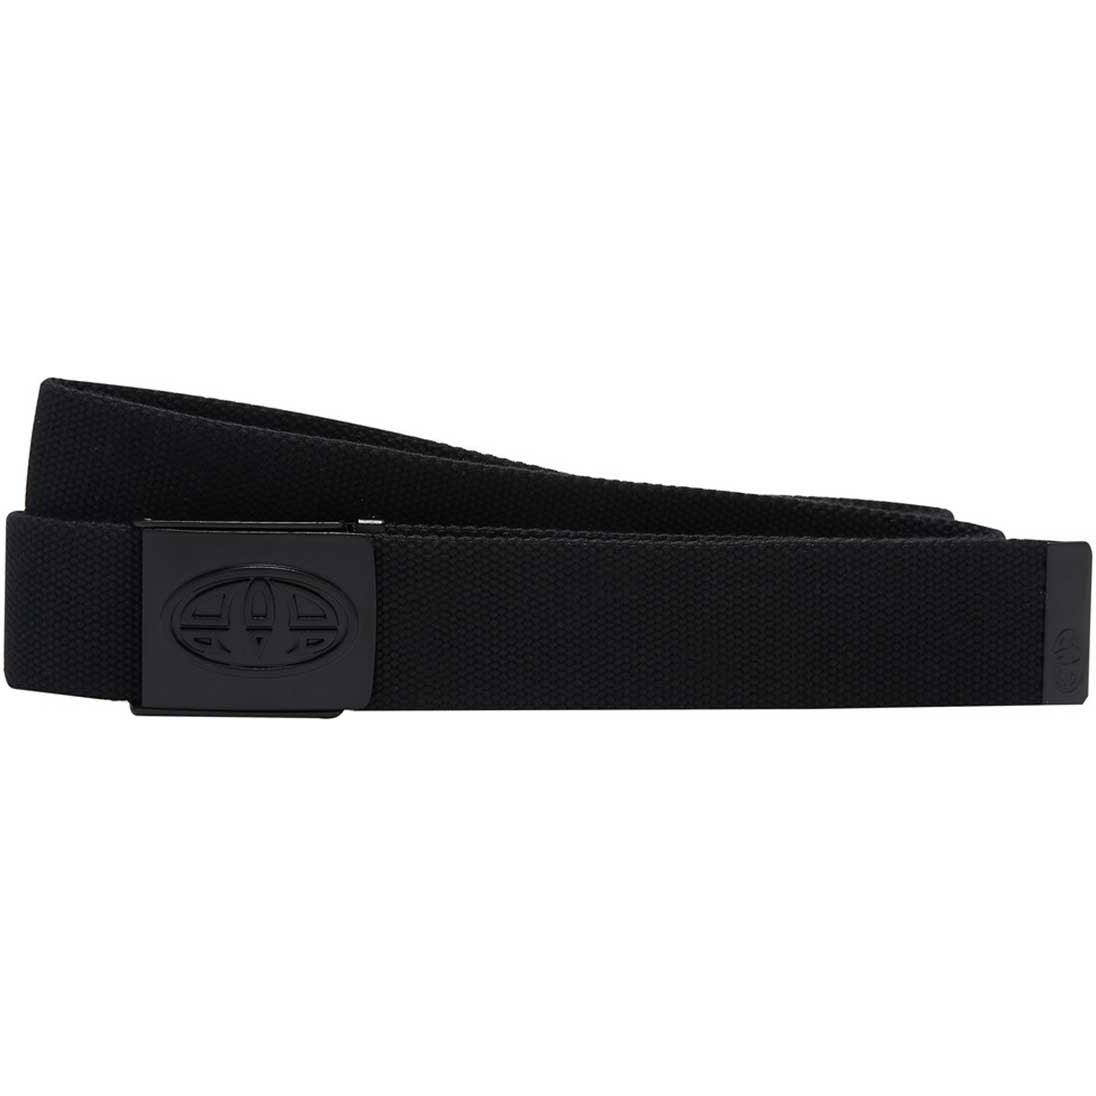 Animal Rexx Web Belt - Black